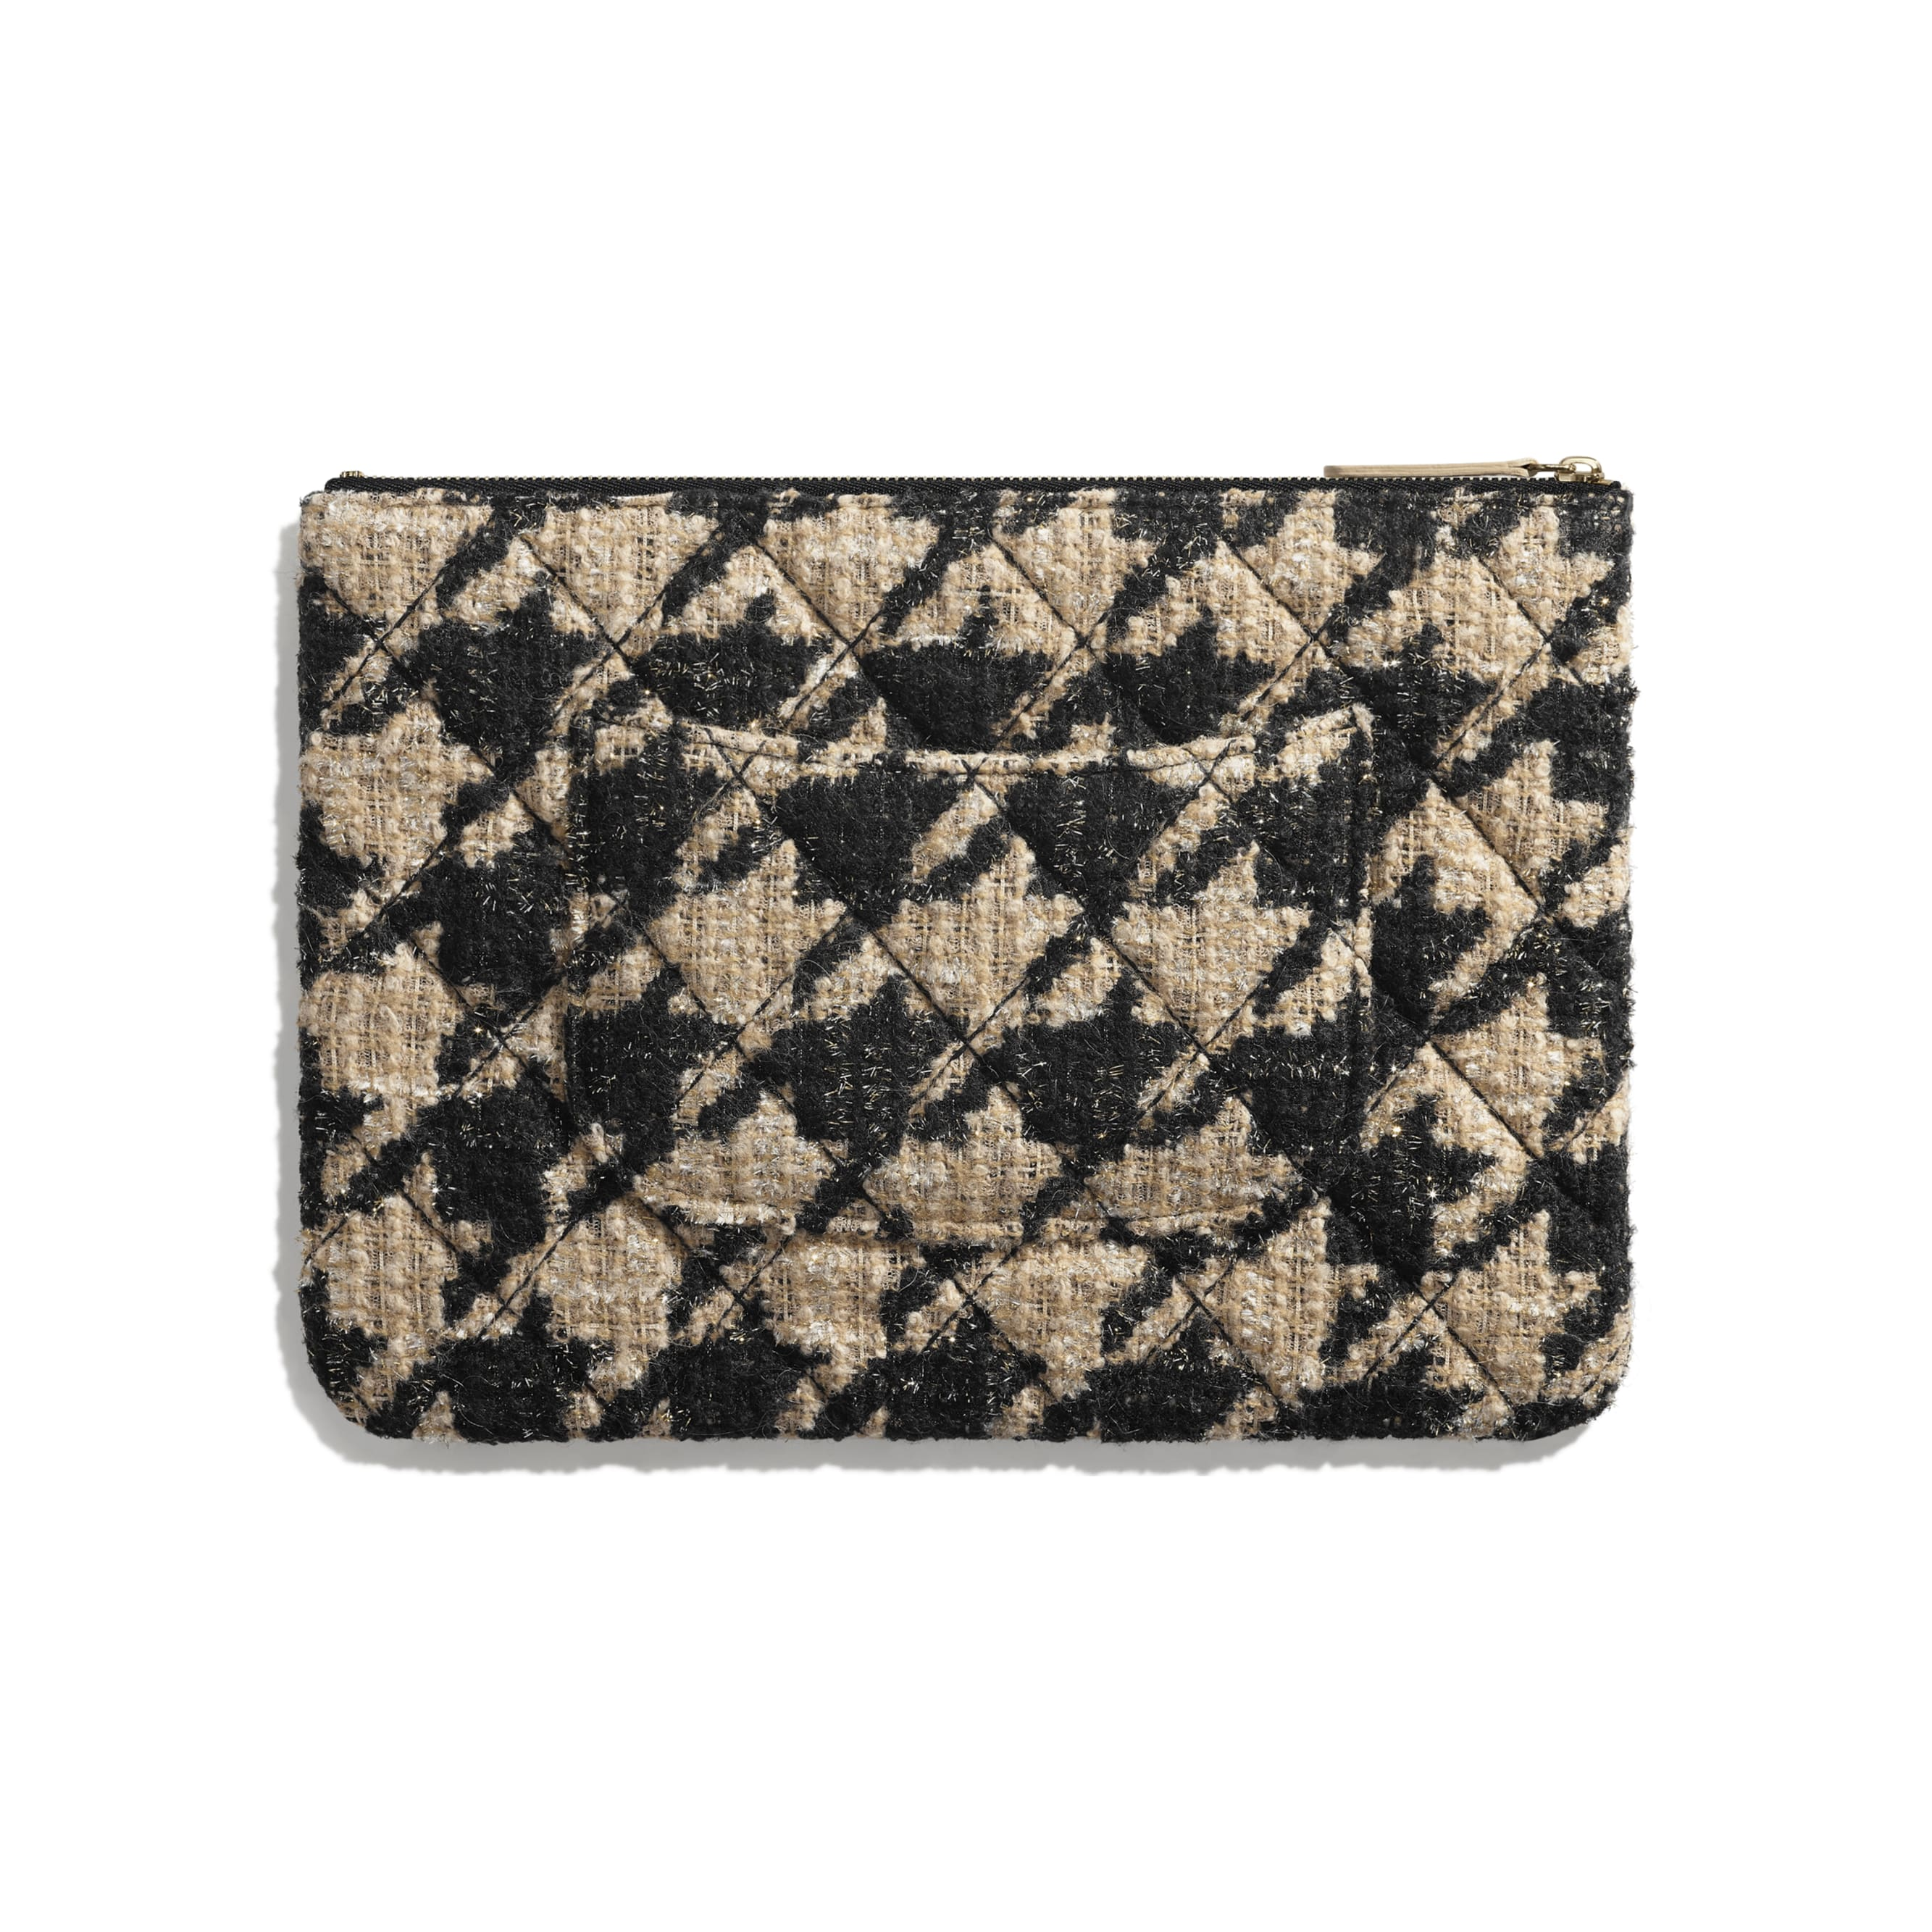 Pouch - Black & Beige - Tweed, Shearling Sheepskin & Gold-Tone Metal - Alternative view - see standard sized version